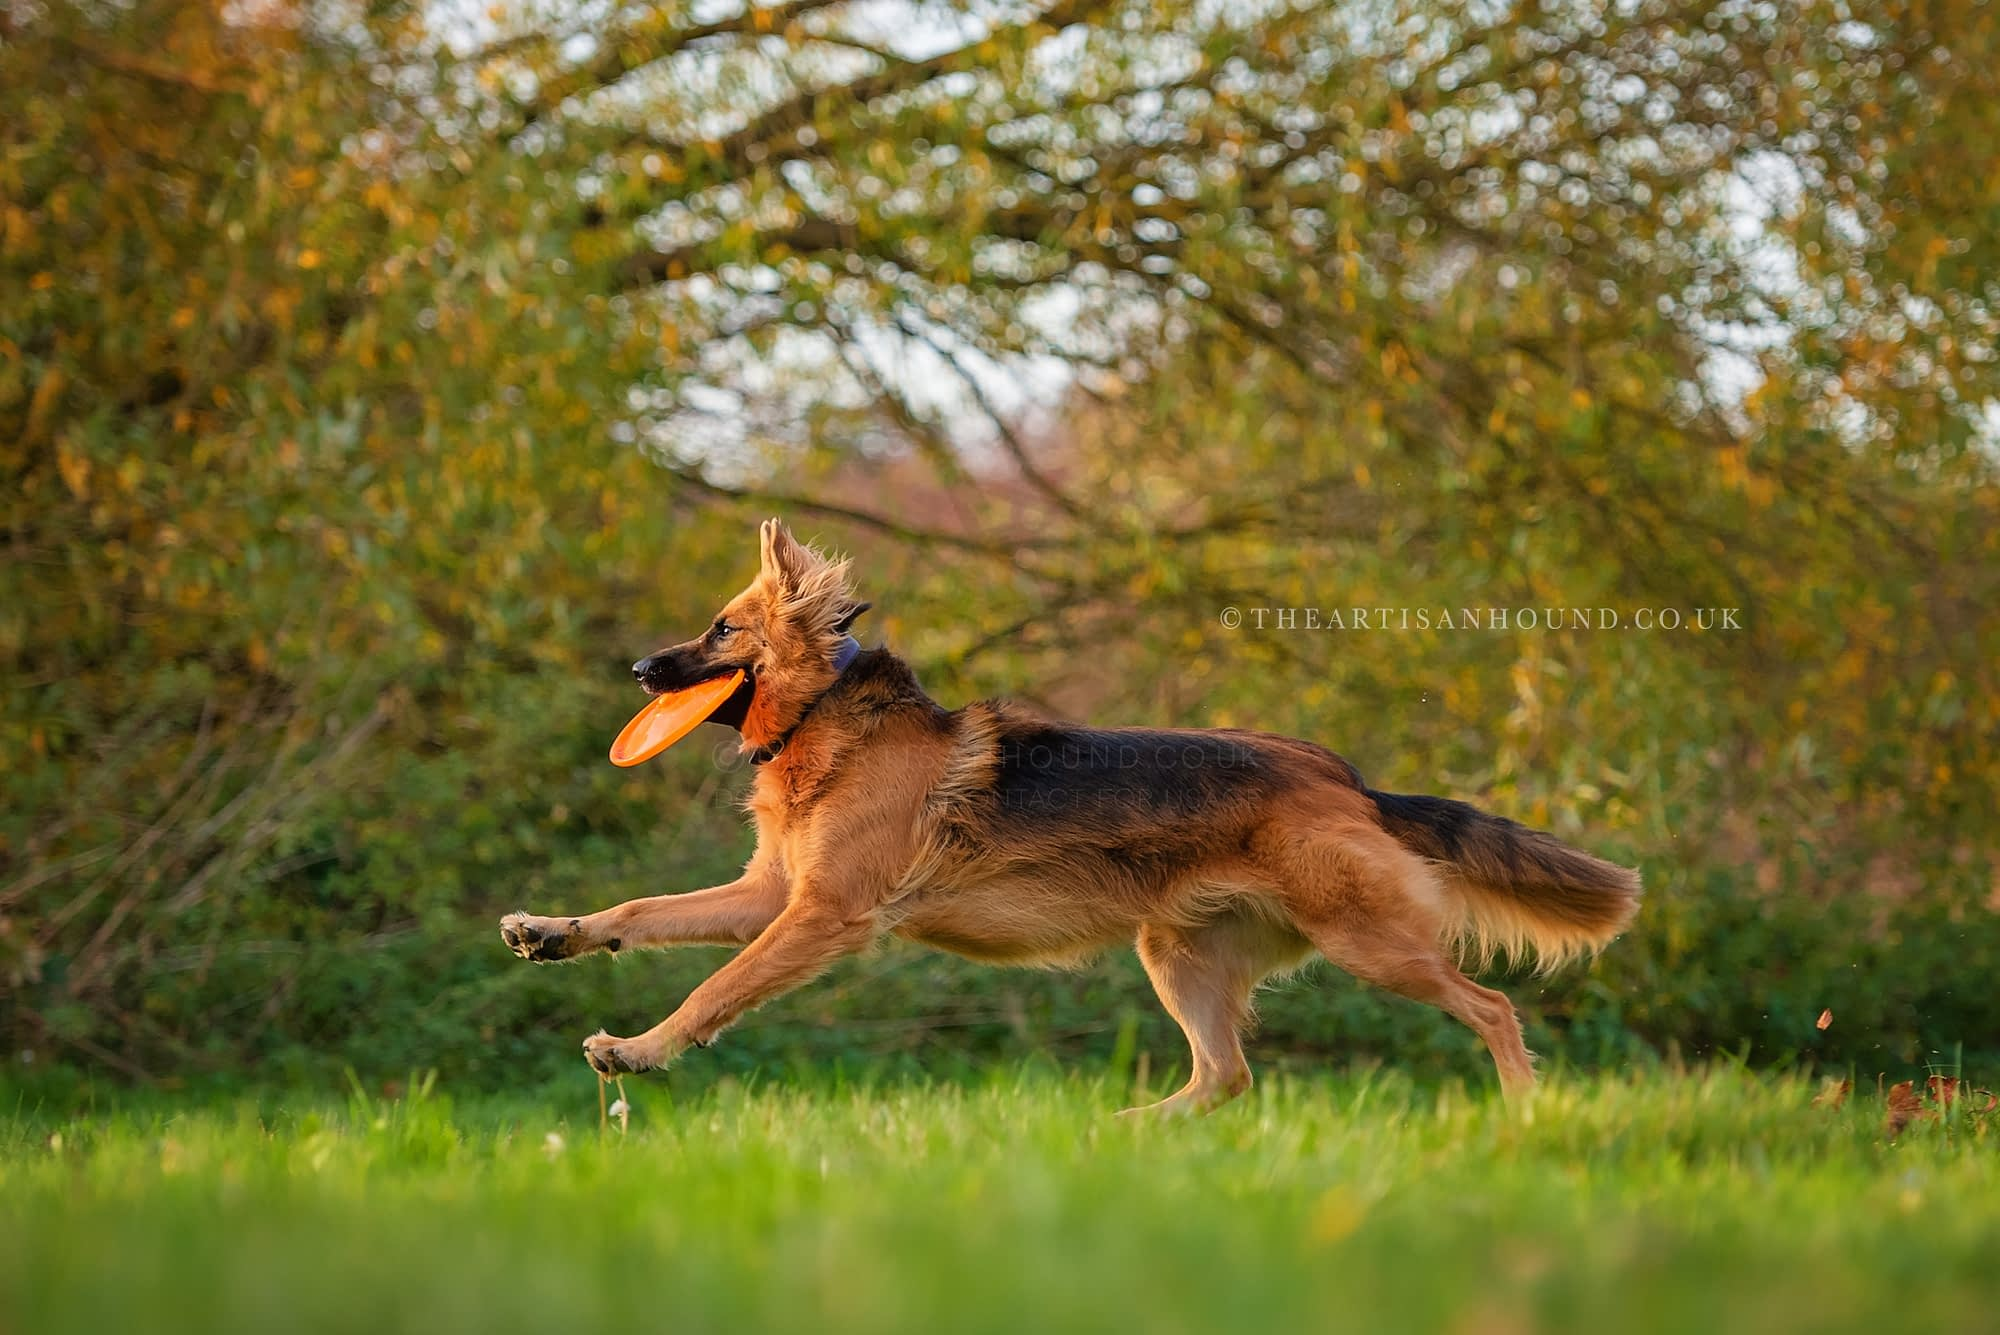 Dog running through park with frisbee